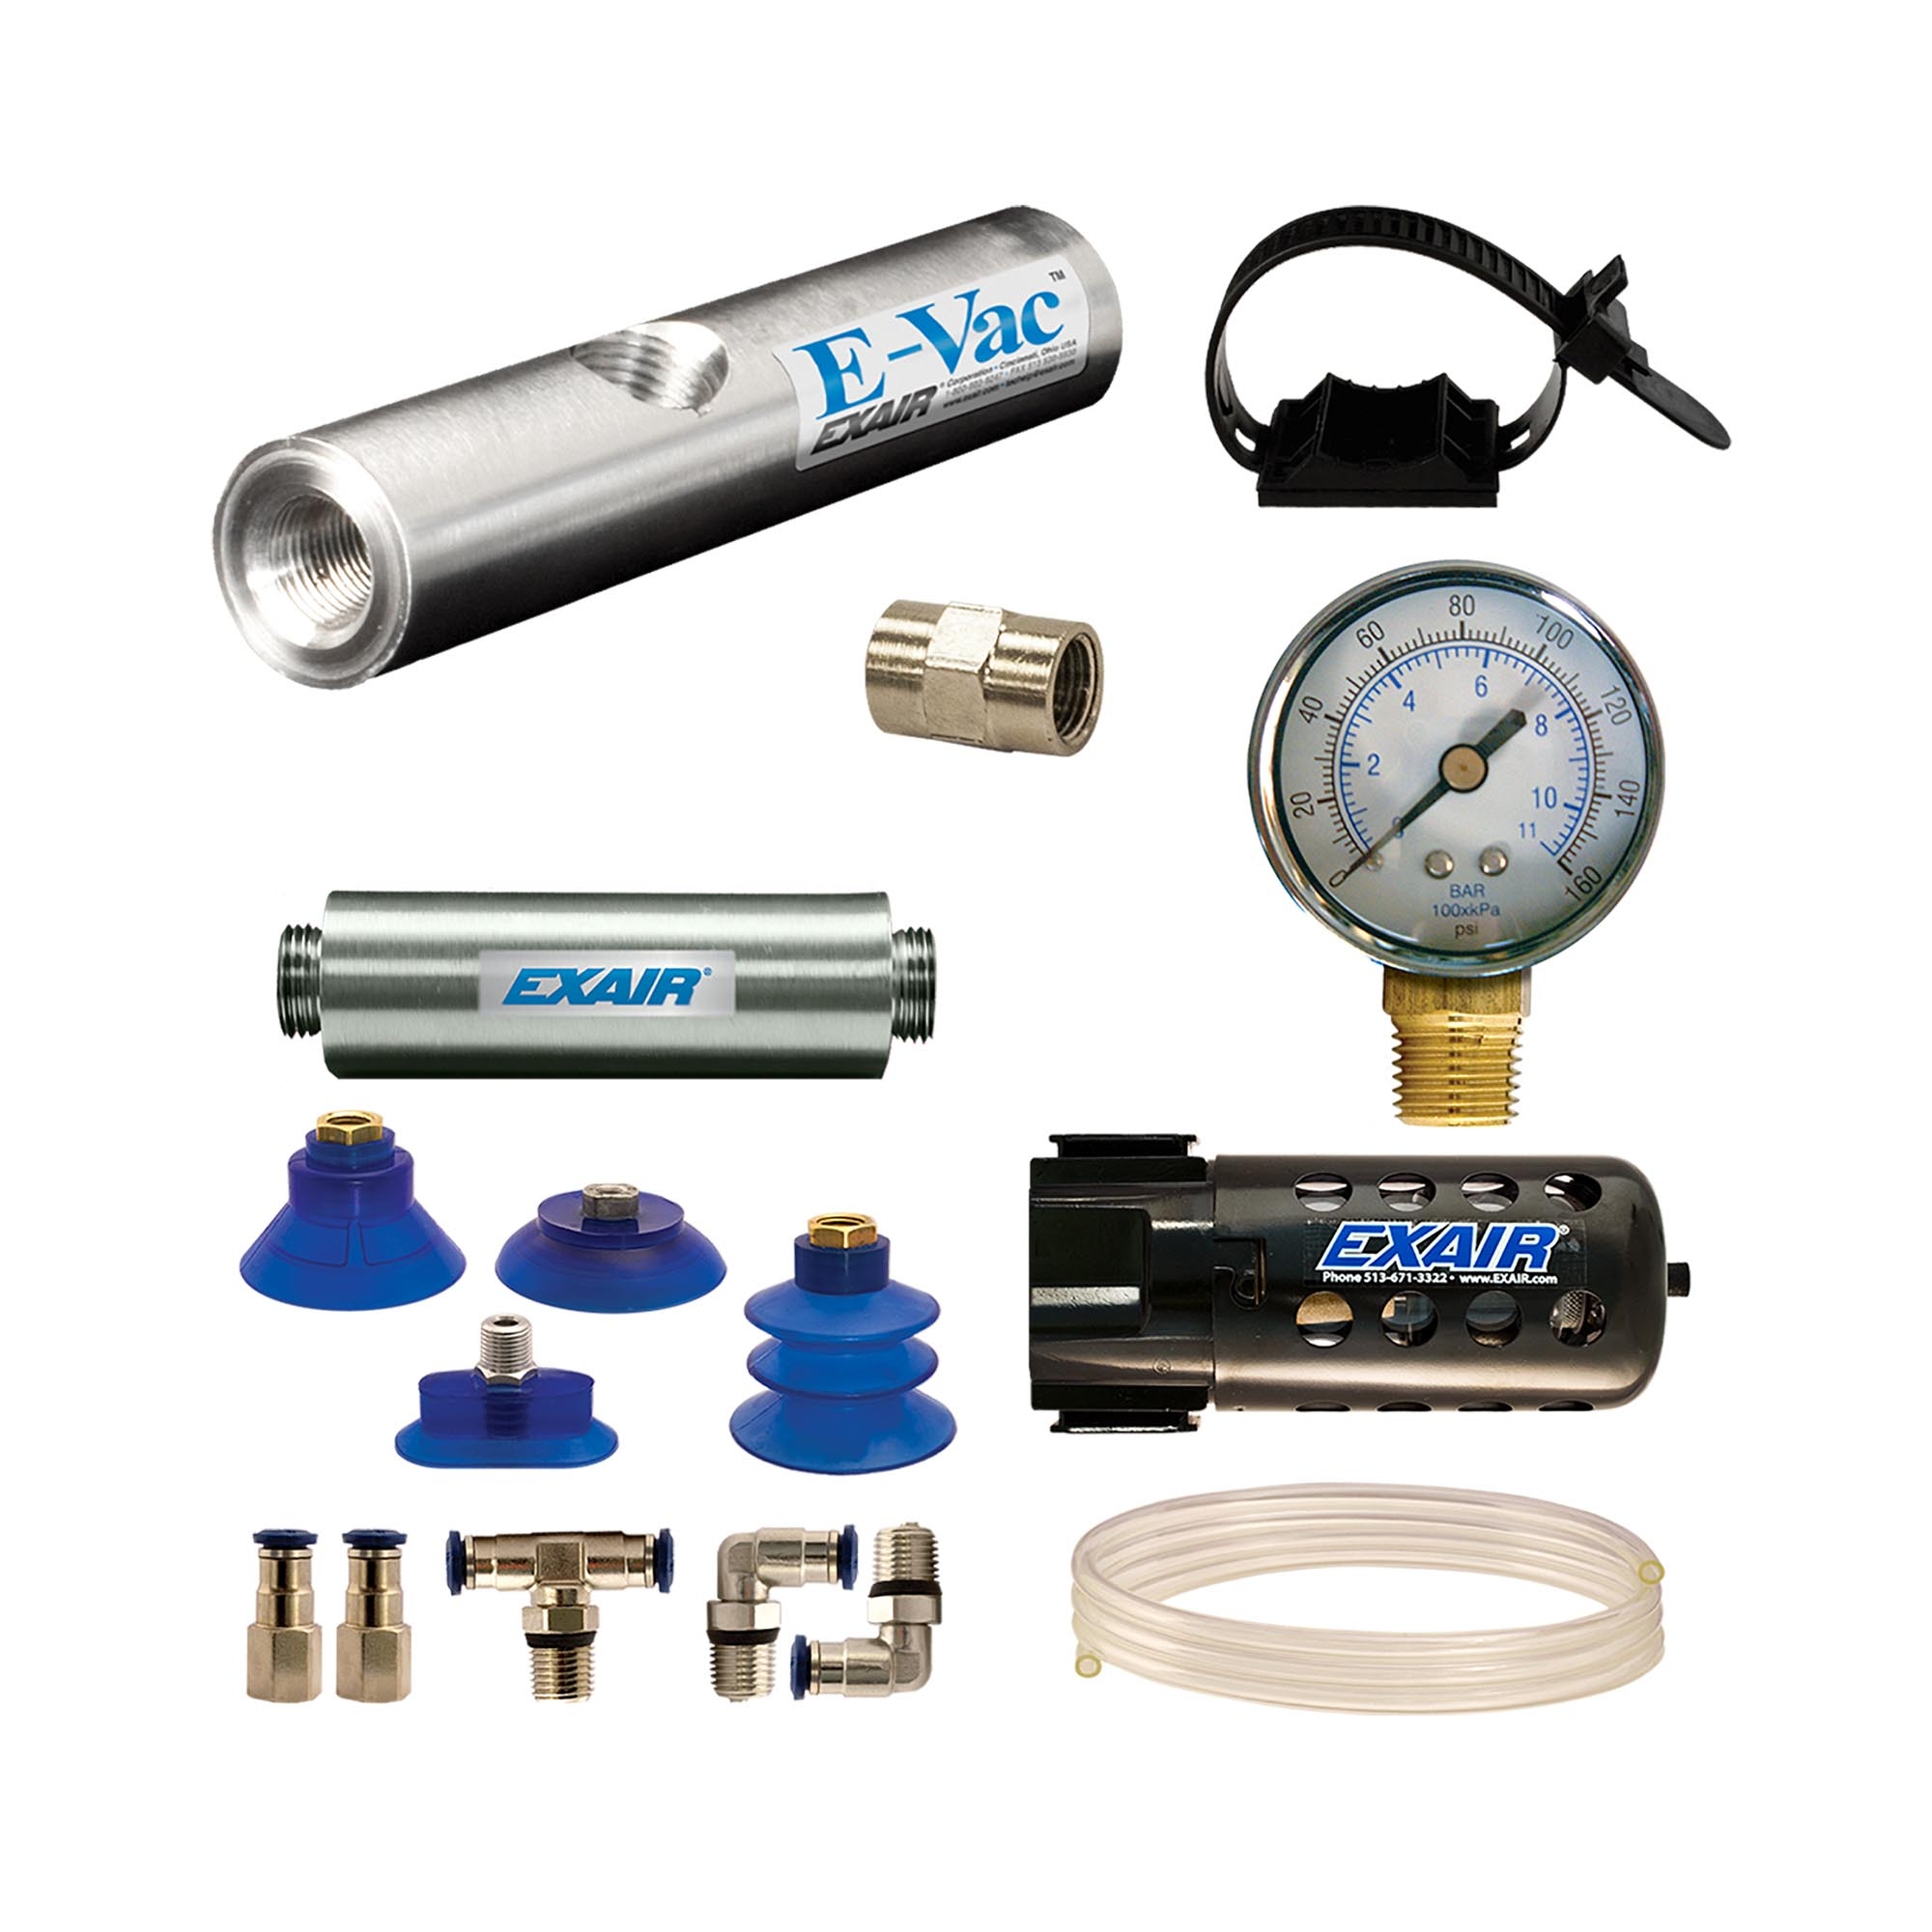 Model 812003M In-Line E-Vac Deluxe kit with straight through muffler adds a filter separator and pressure gauge.